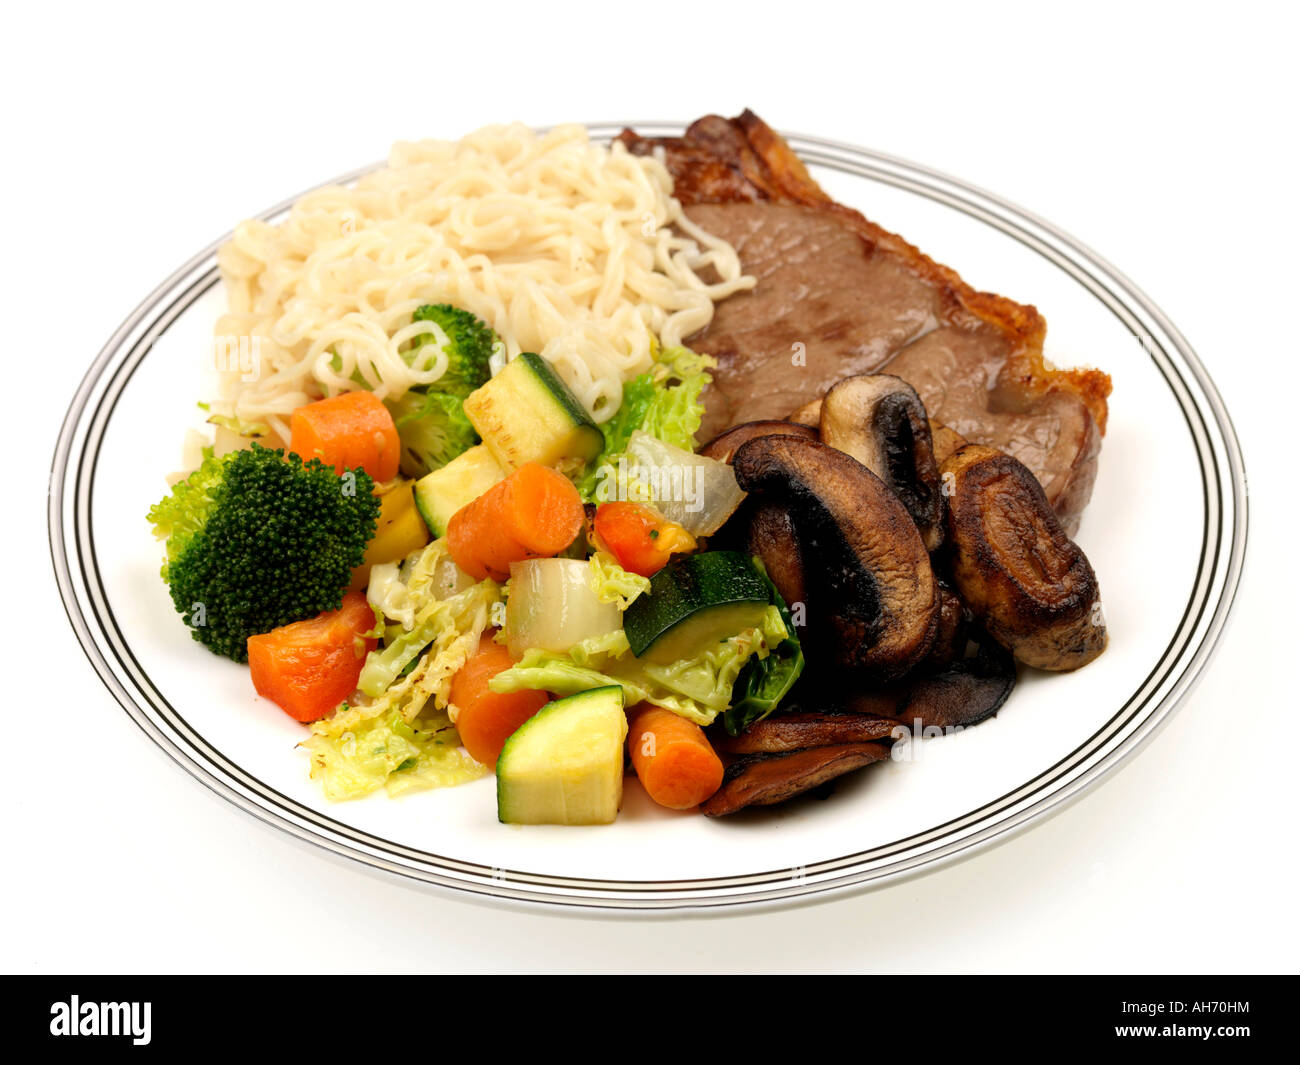 Lean Grilled Steak and Noodles - Stock Image